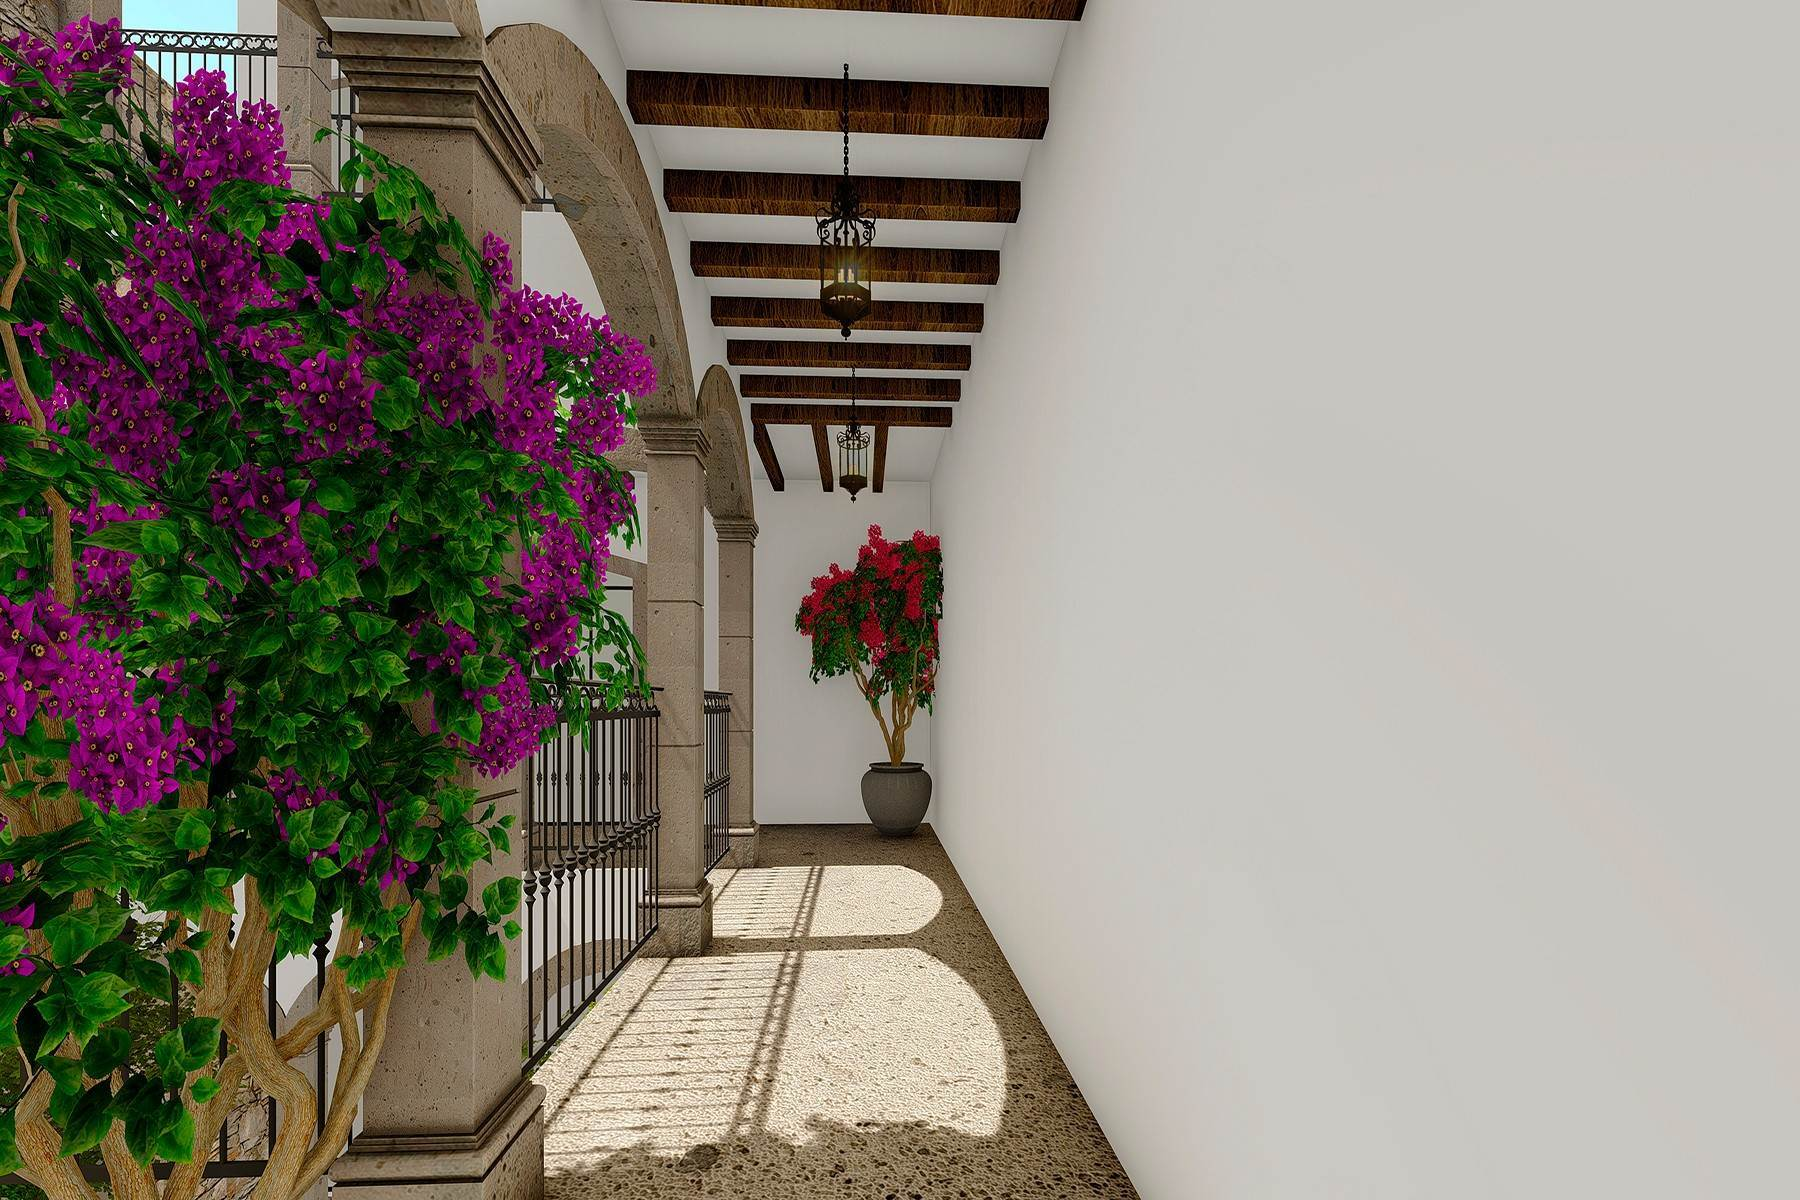 7. Condominiums for Sale at Condos Quebrada Quebrada 121 B San Miguel De Allende, Guanajuato 37700 Mexico